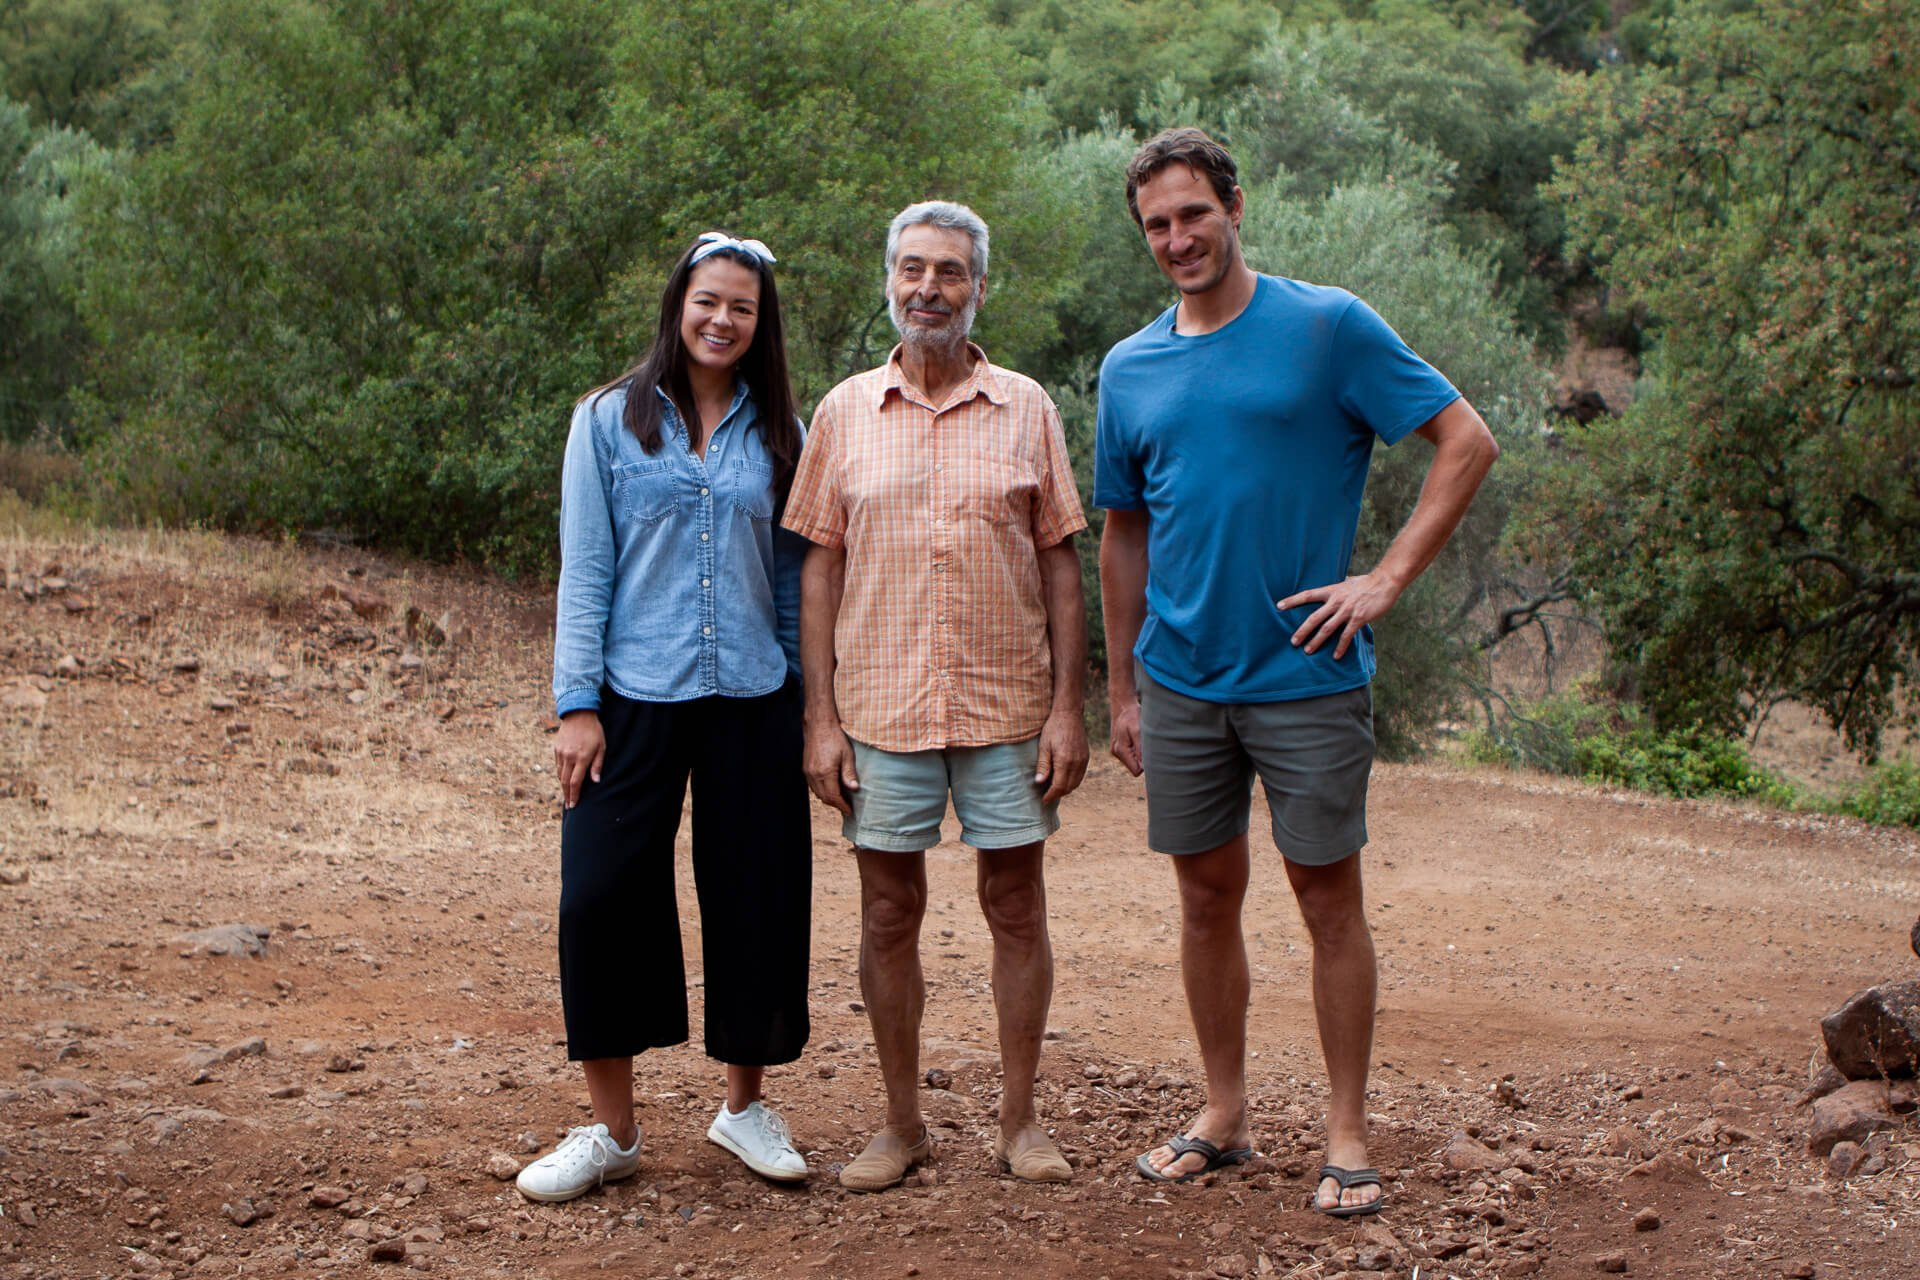 Kim, Eduardo, and Chris pose after learning from the pig farmer that sells the most expensive Jamon Iberico.